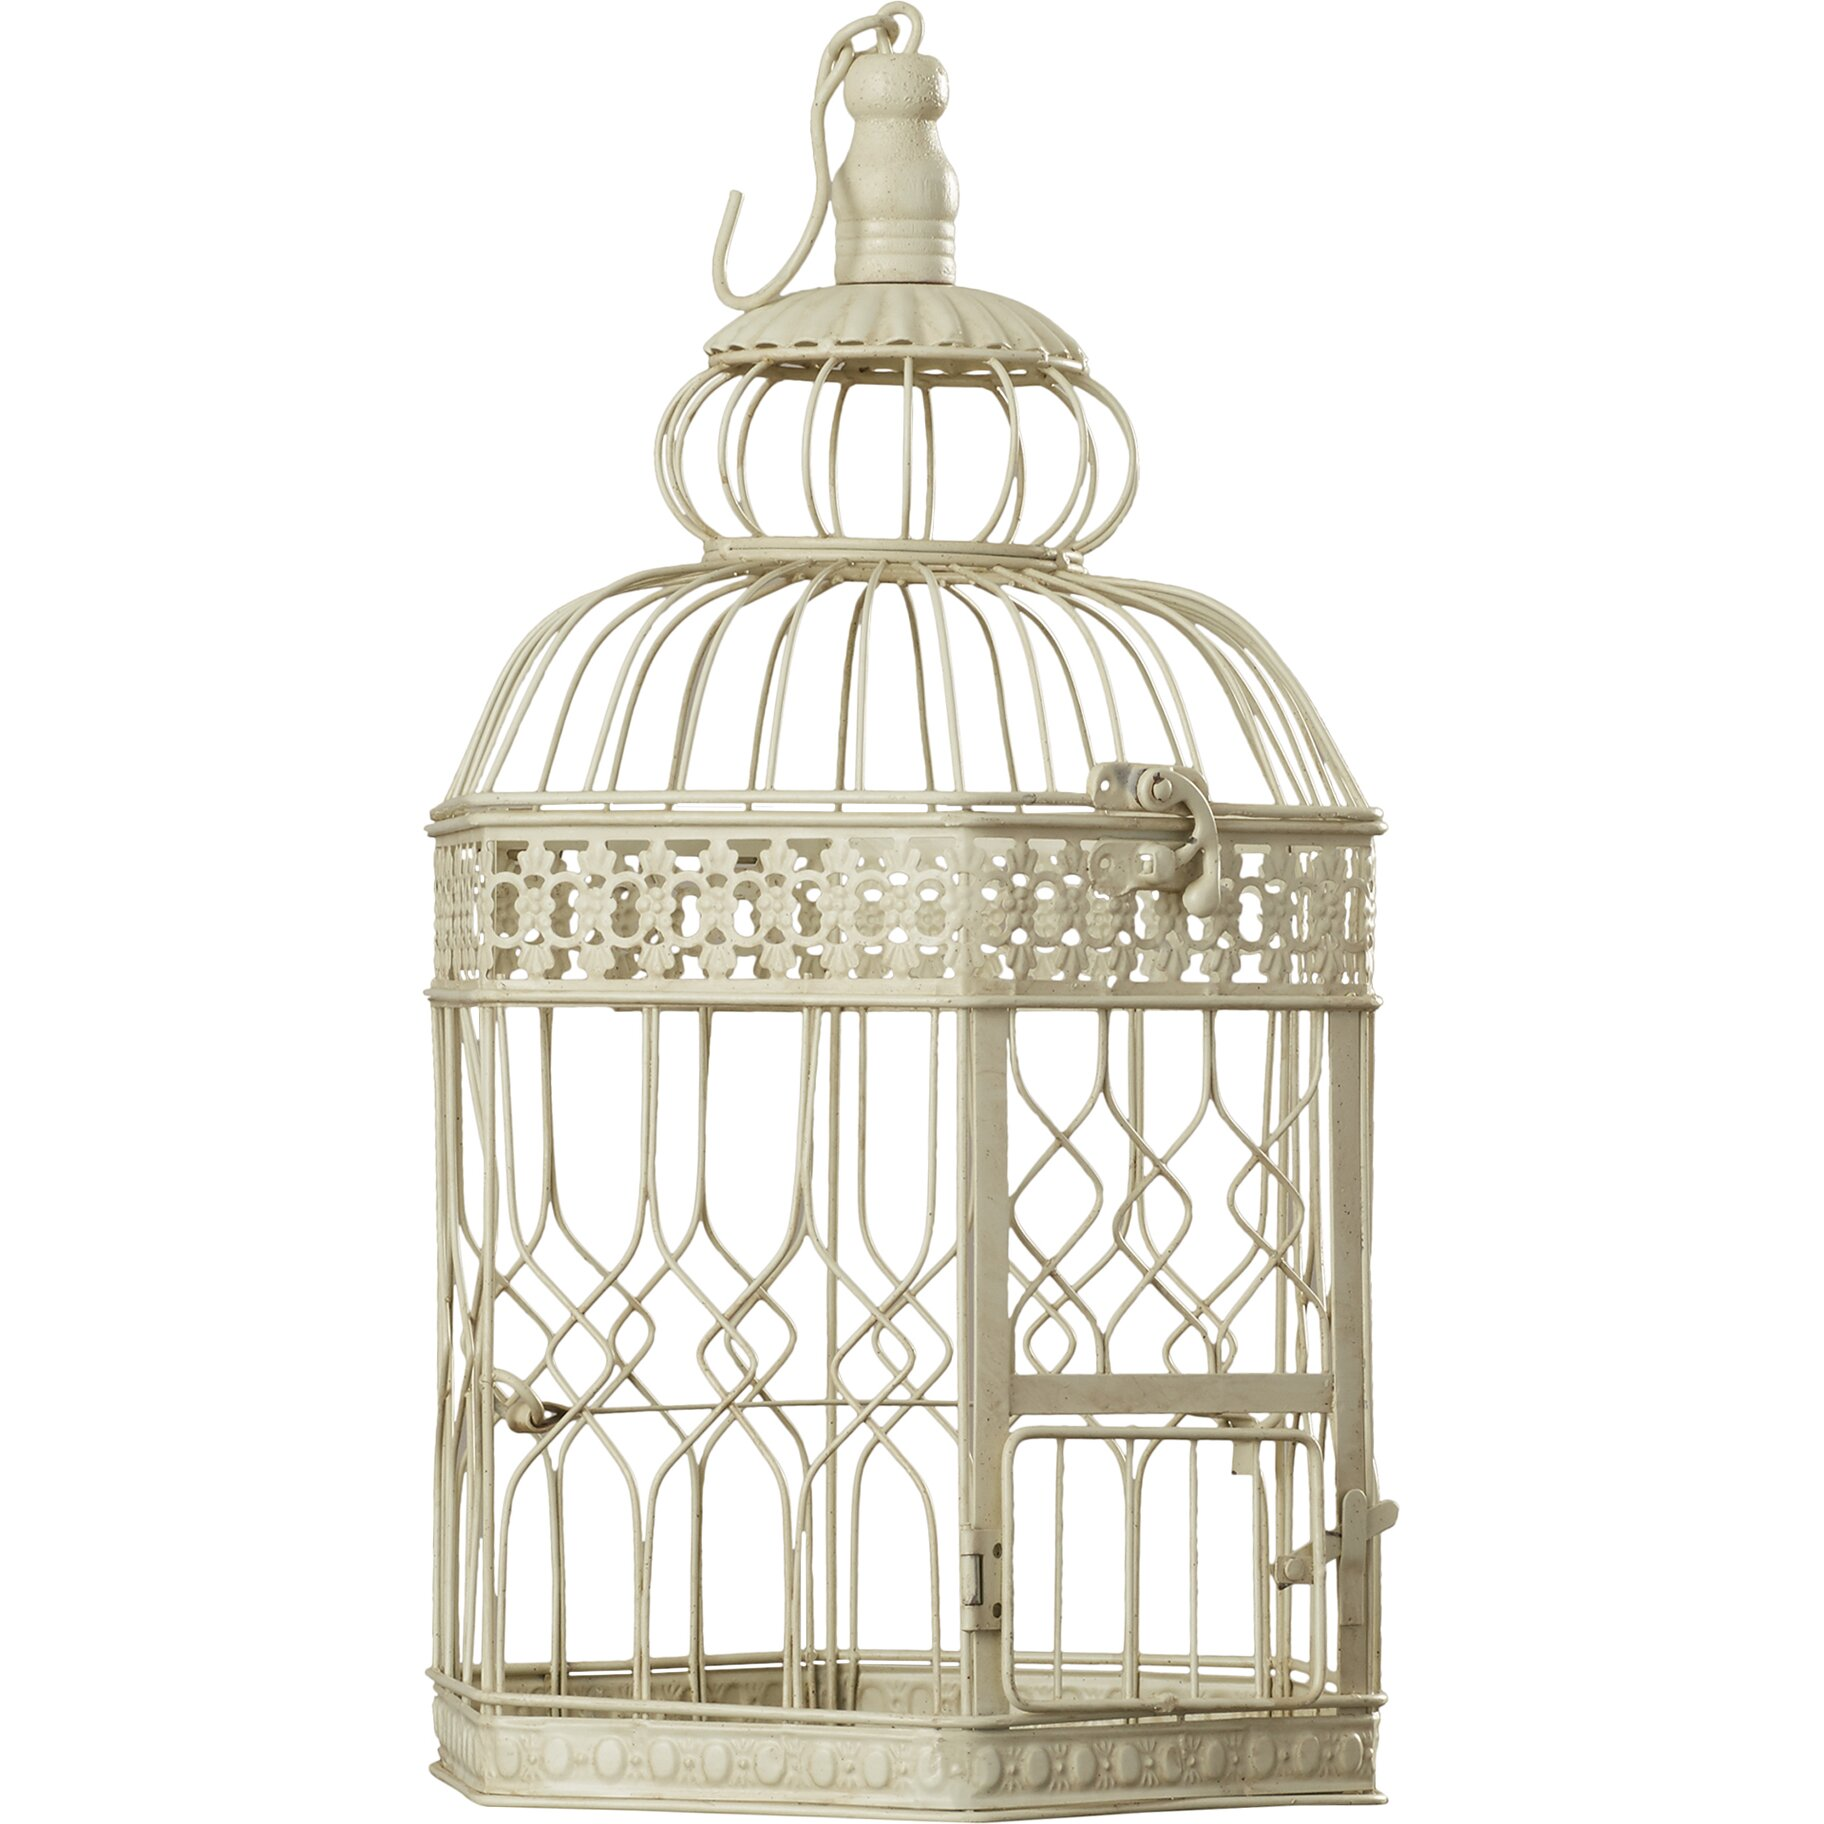 darby home co 2 piece decorative metal bird cage set house for sale zip code 33165 houses for sale 33165